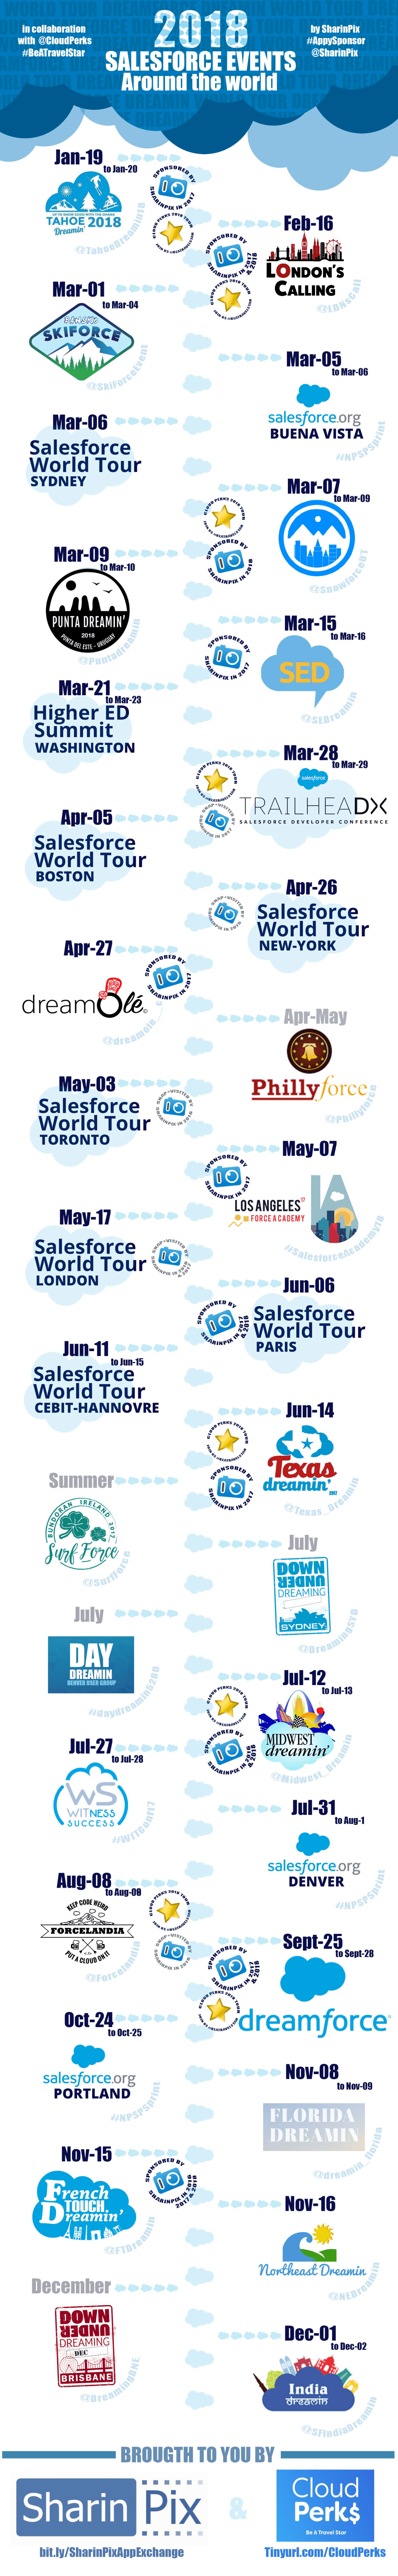 Salesforce Events of 2018 | Infographic